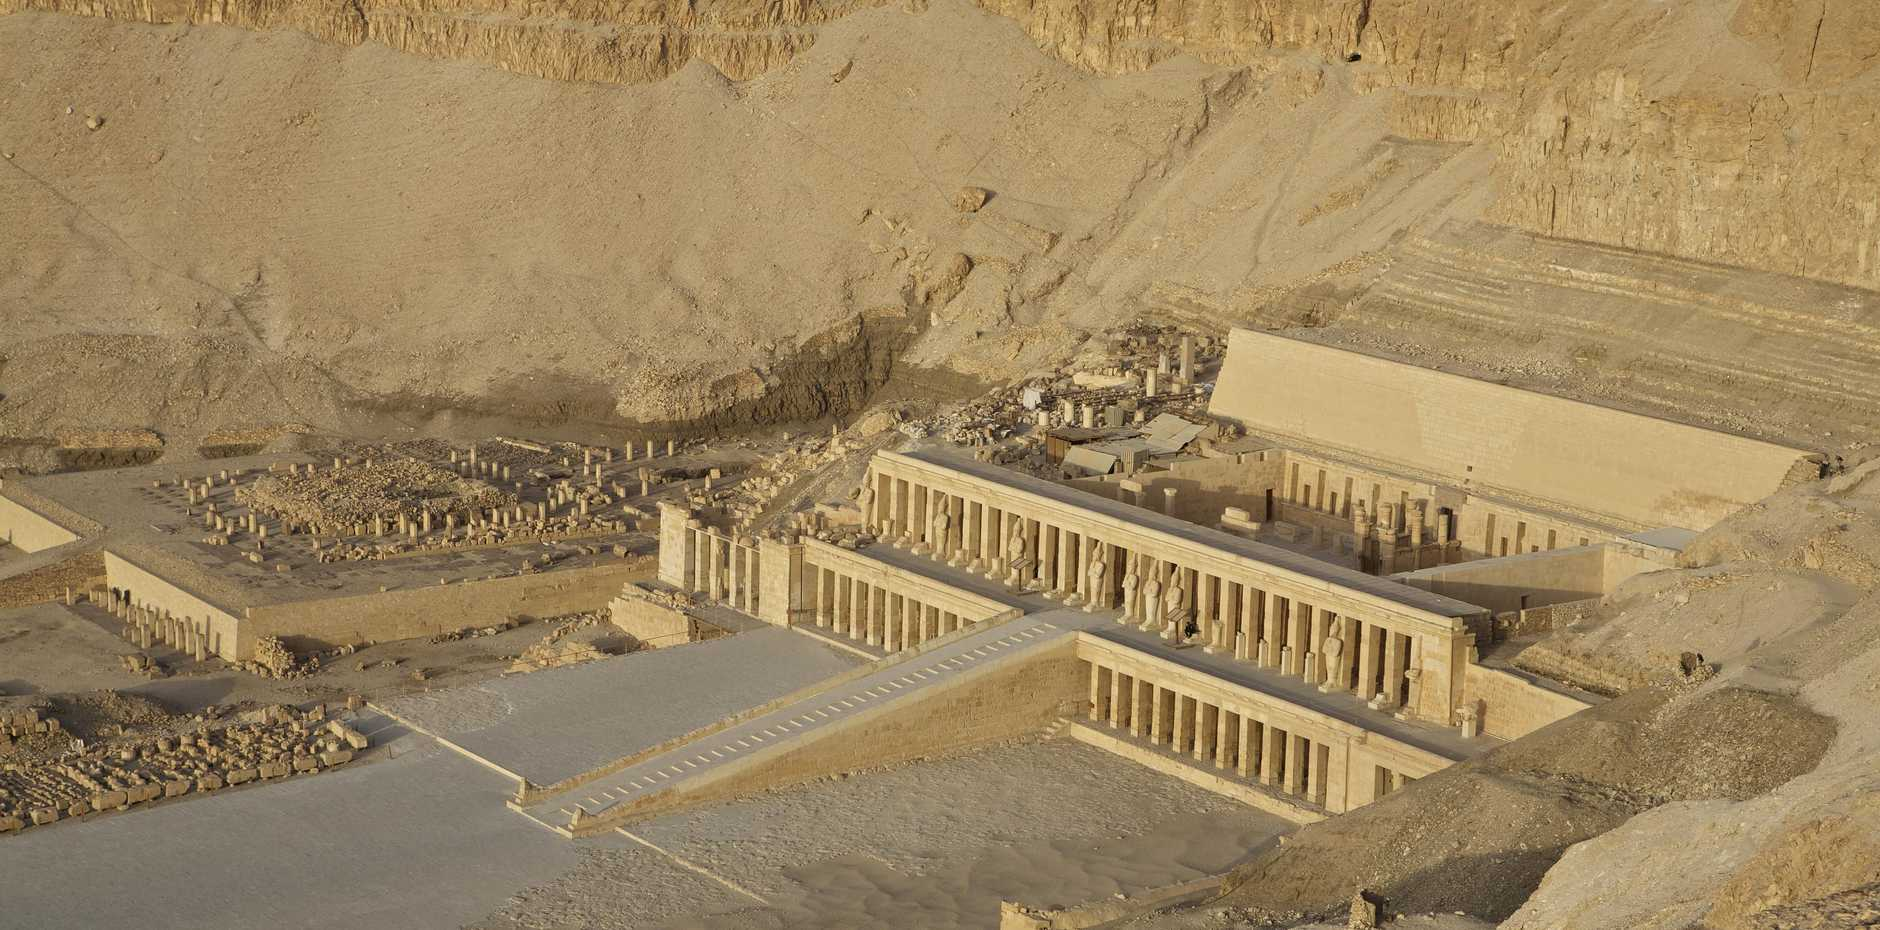 View of the Temple of Queen Hatshepsut in Deir el-bahari in the morning sun.